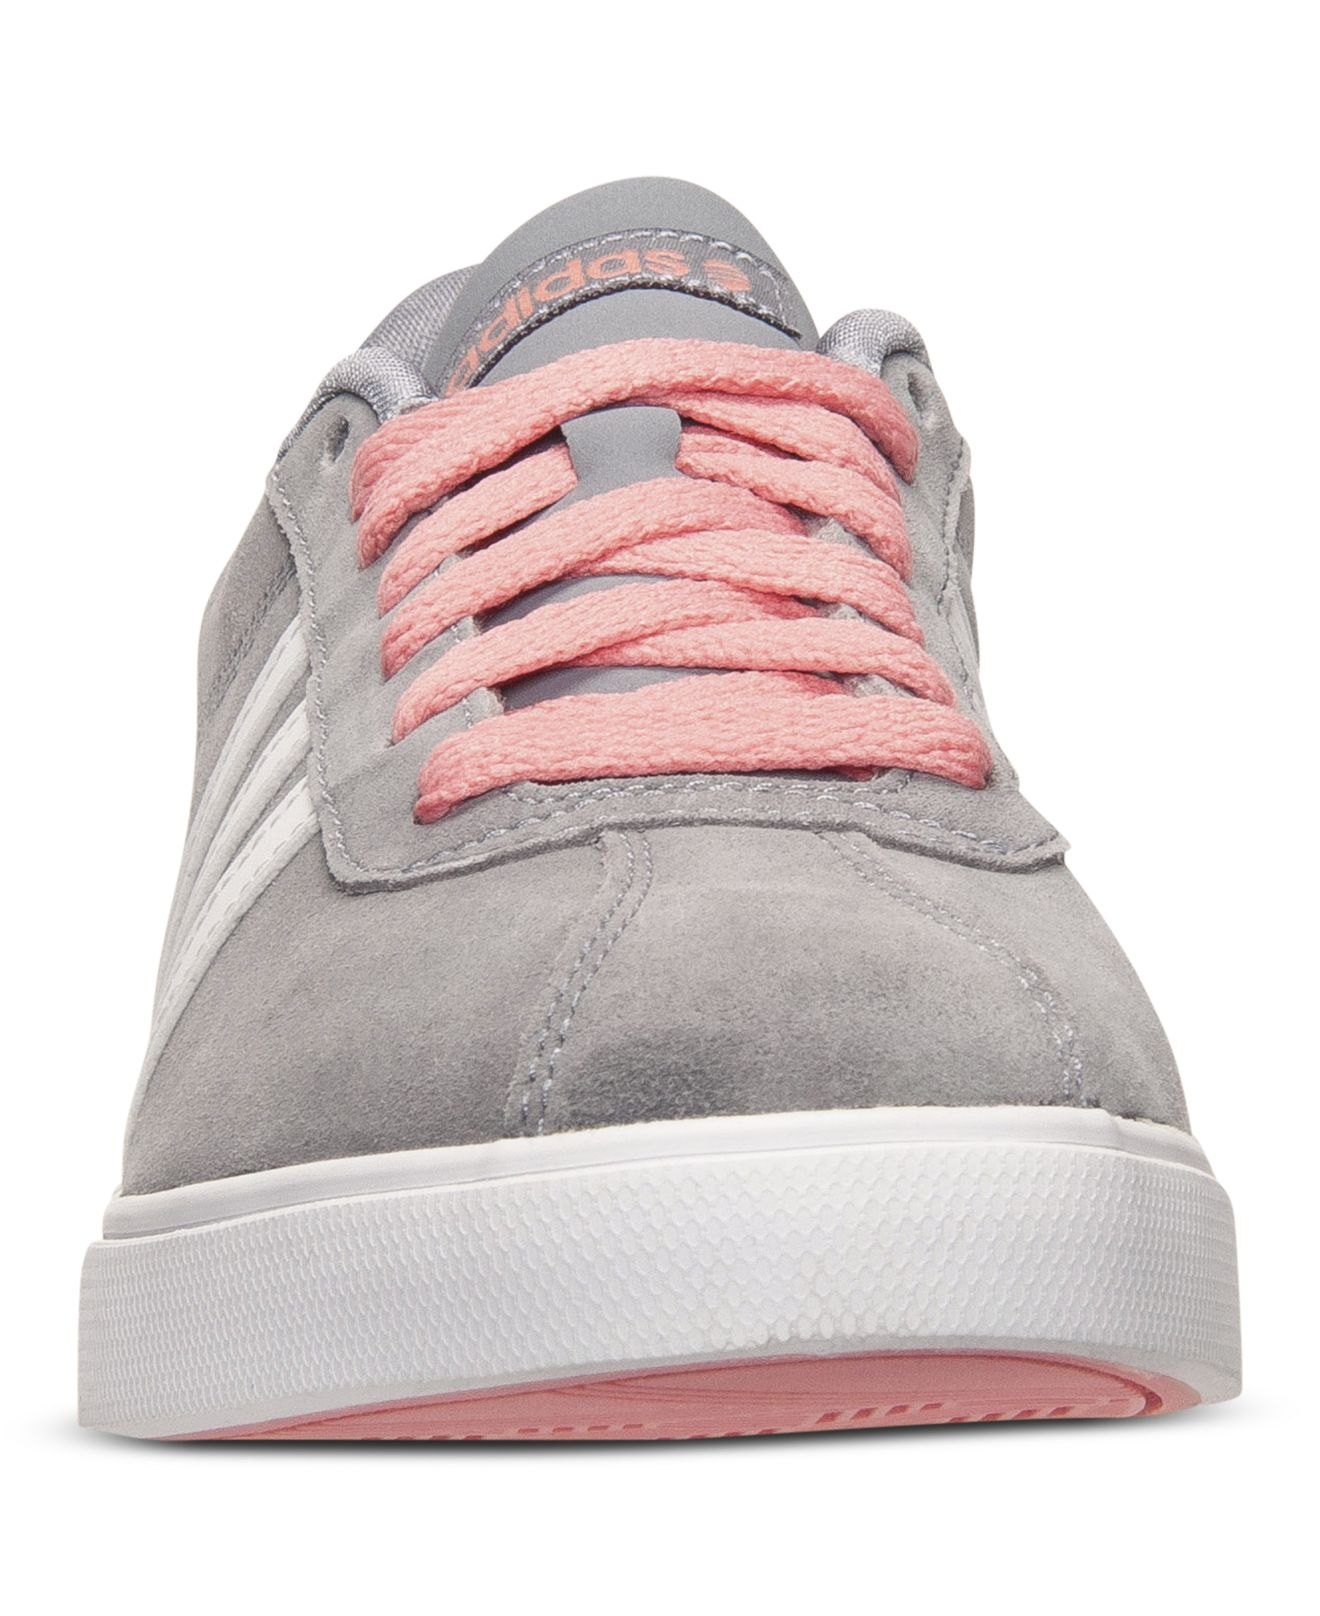 3b2029f06726 Lyst - adidas Women S Courtset Casual Sneakers From Finish Line in Gray